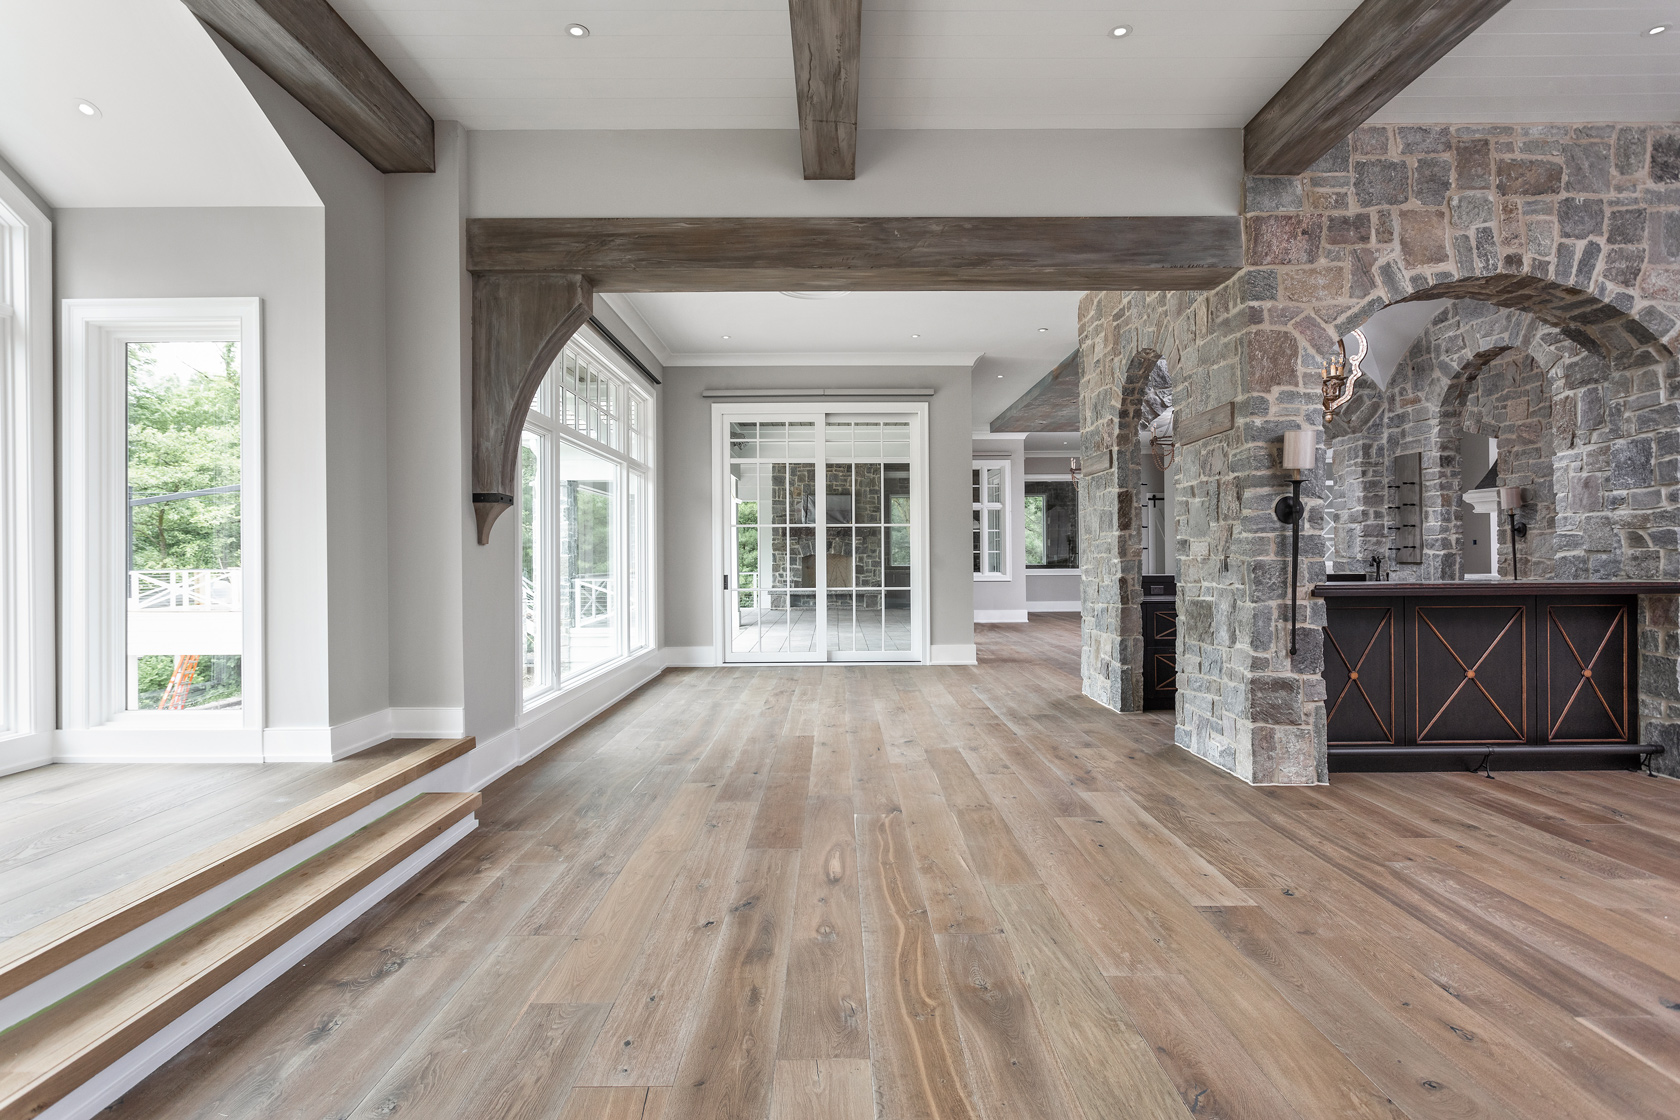 home interior with stone work, wooden floors, and natural sunlight